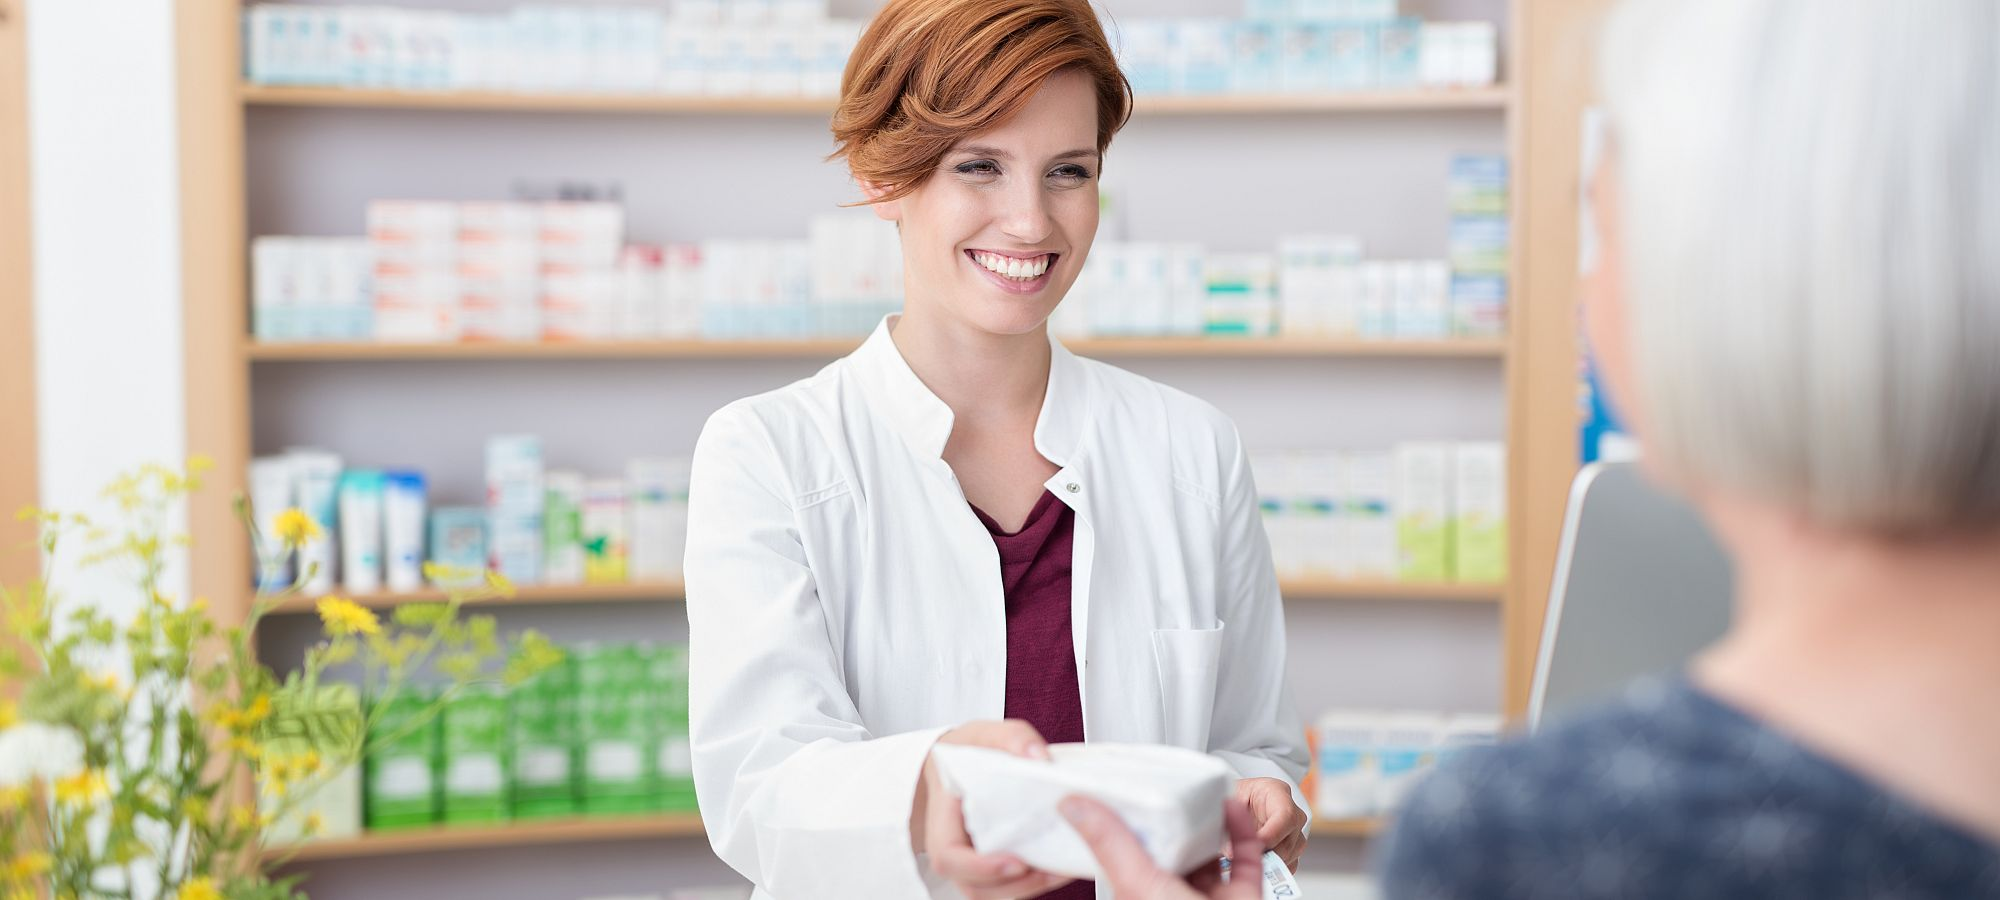 See Your Pharmacist for These Healthcare Services